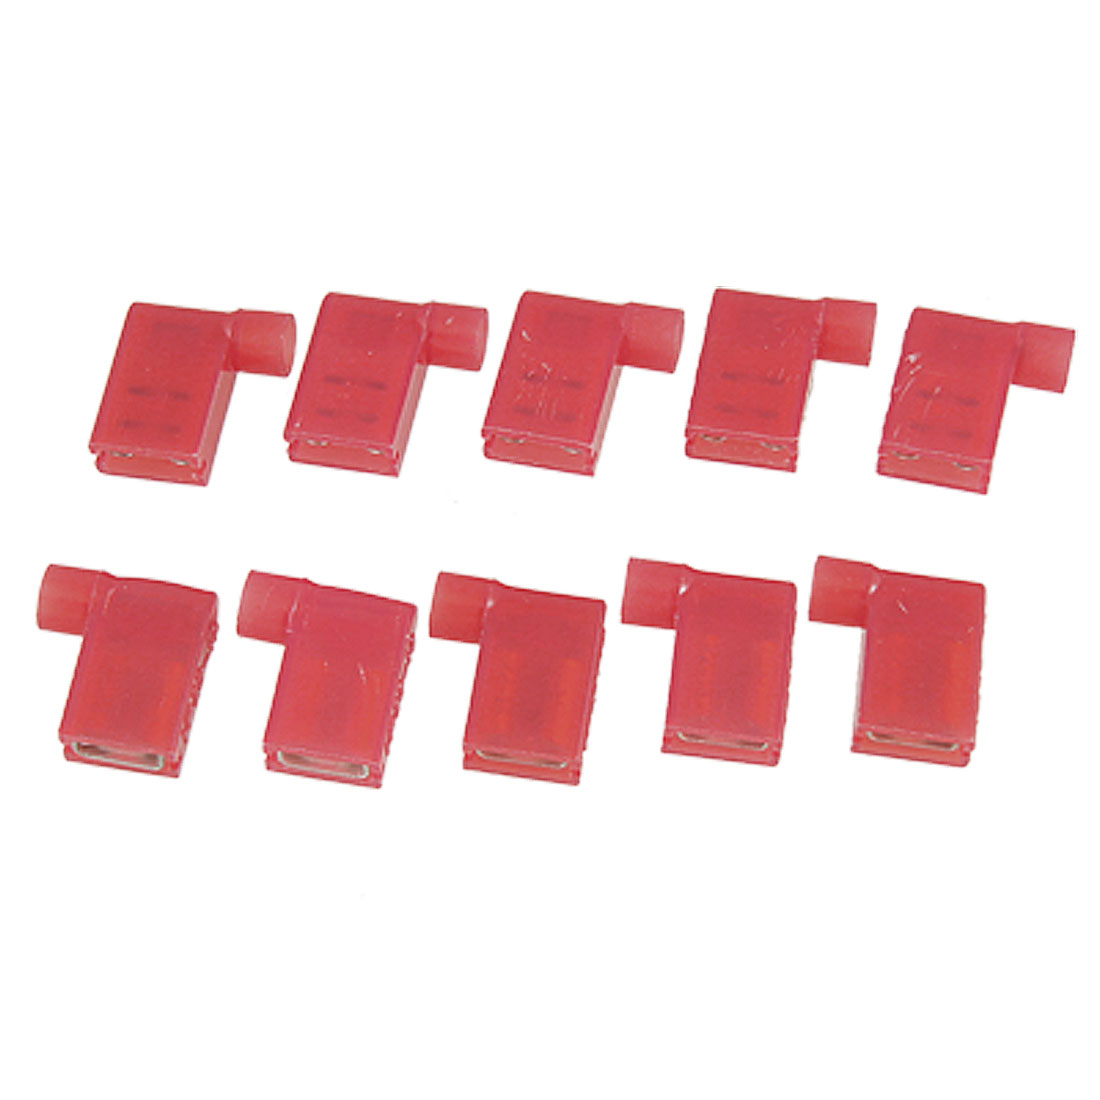 10 Pcs AWG 22-18 Full Insulated Female Spade Crimp Flag Connector Terminal Red FLDNY 1-250